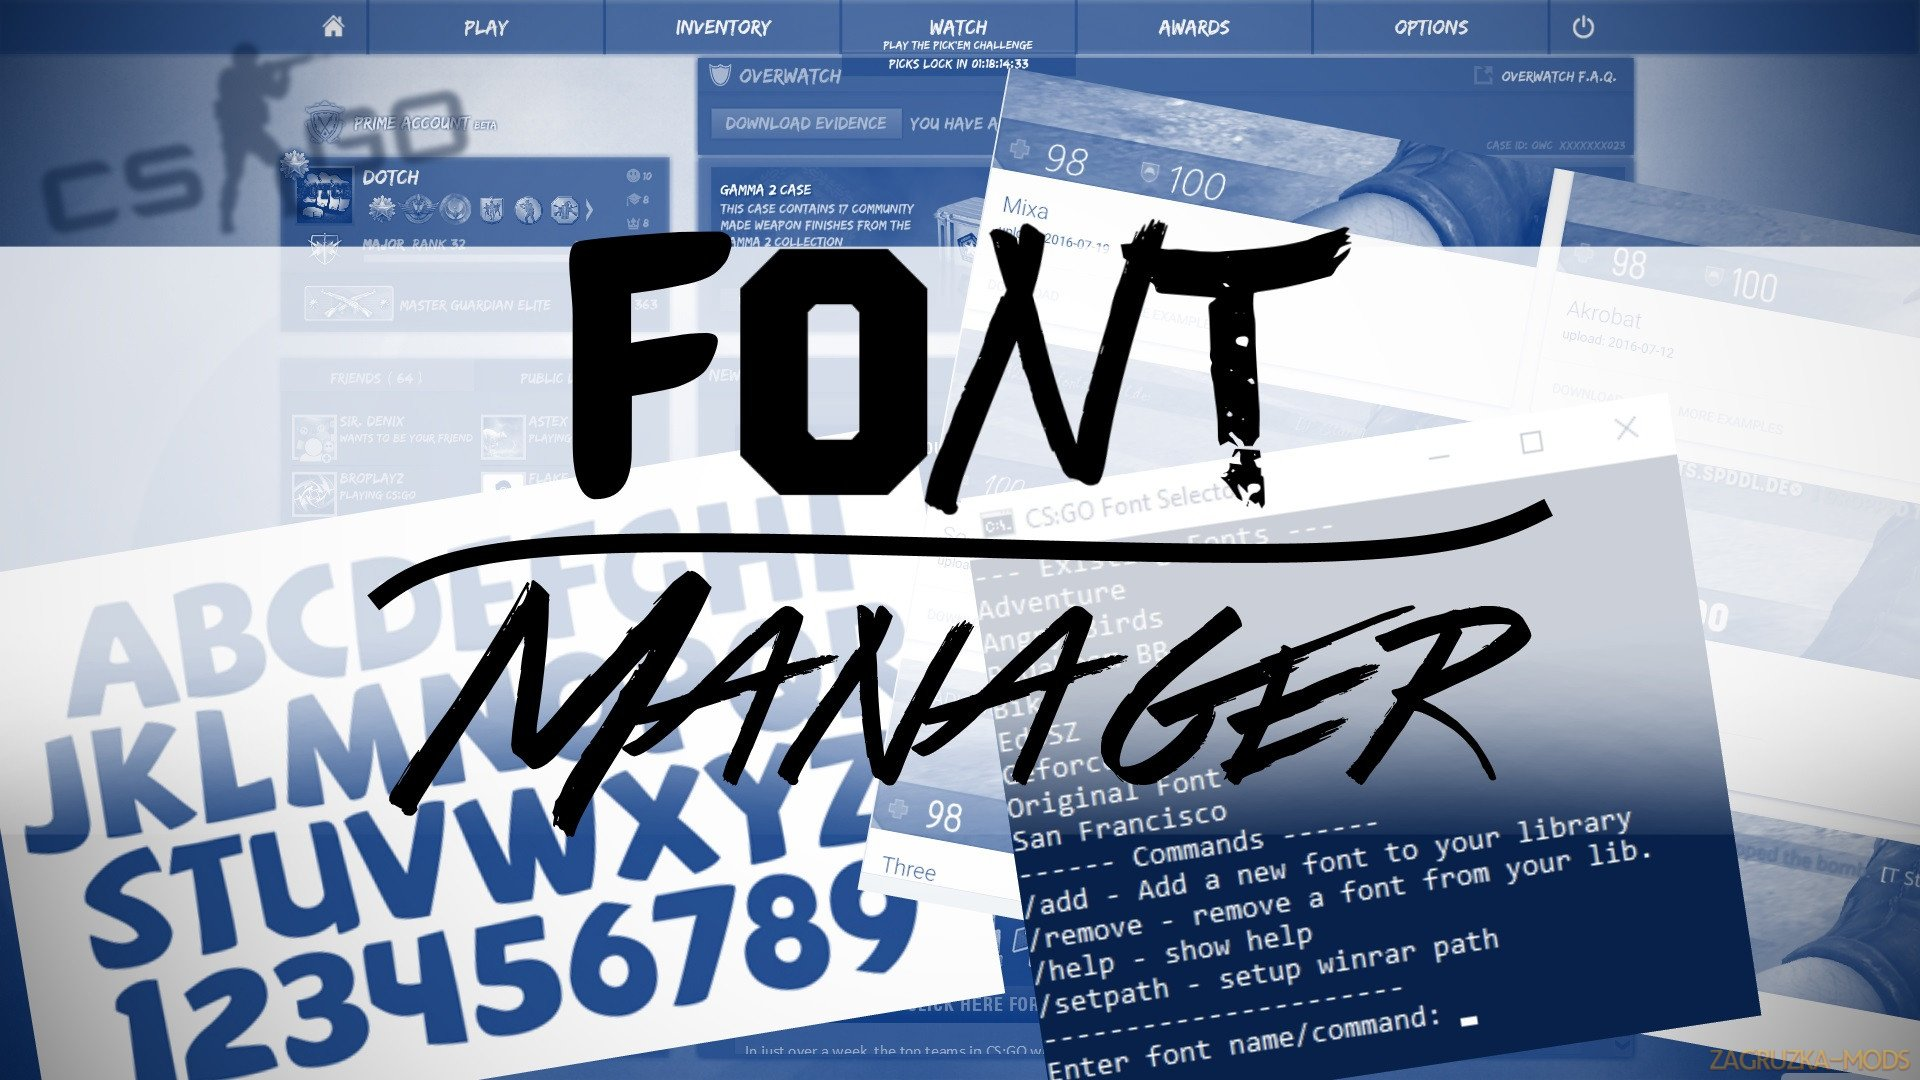 Font Manager v2.0 for CS:GO